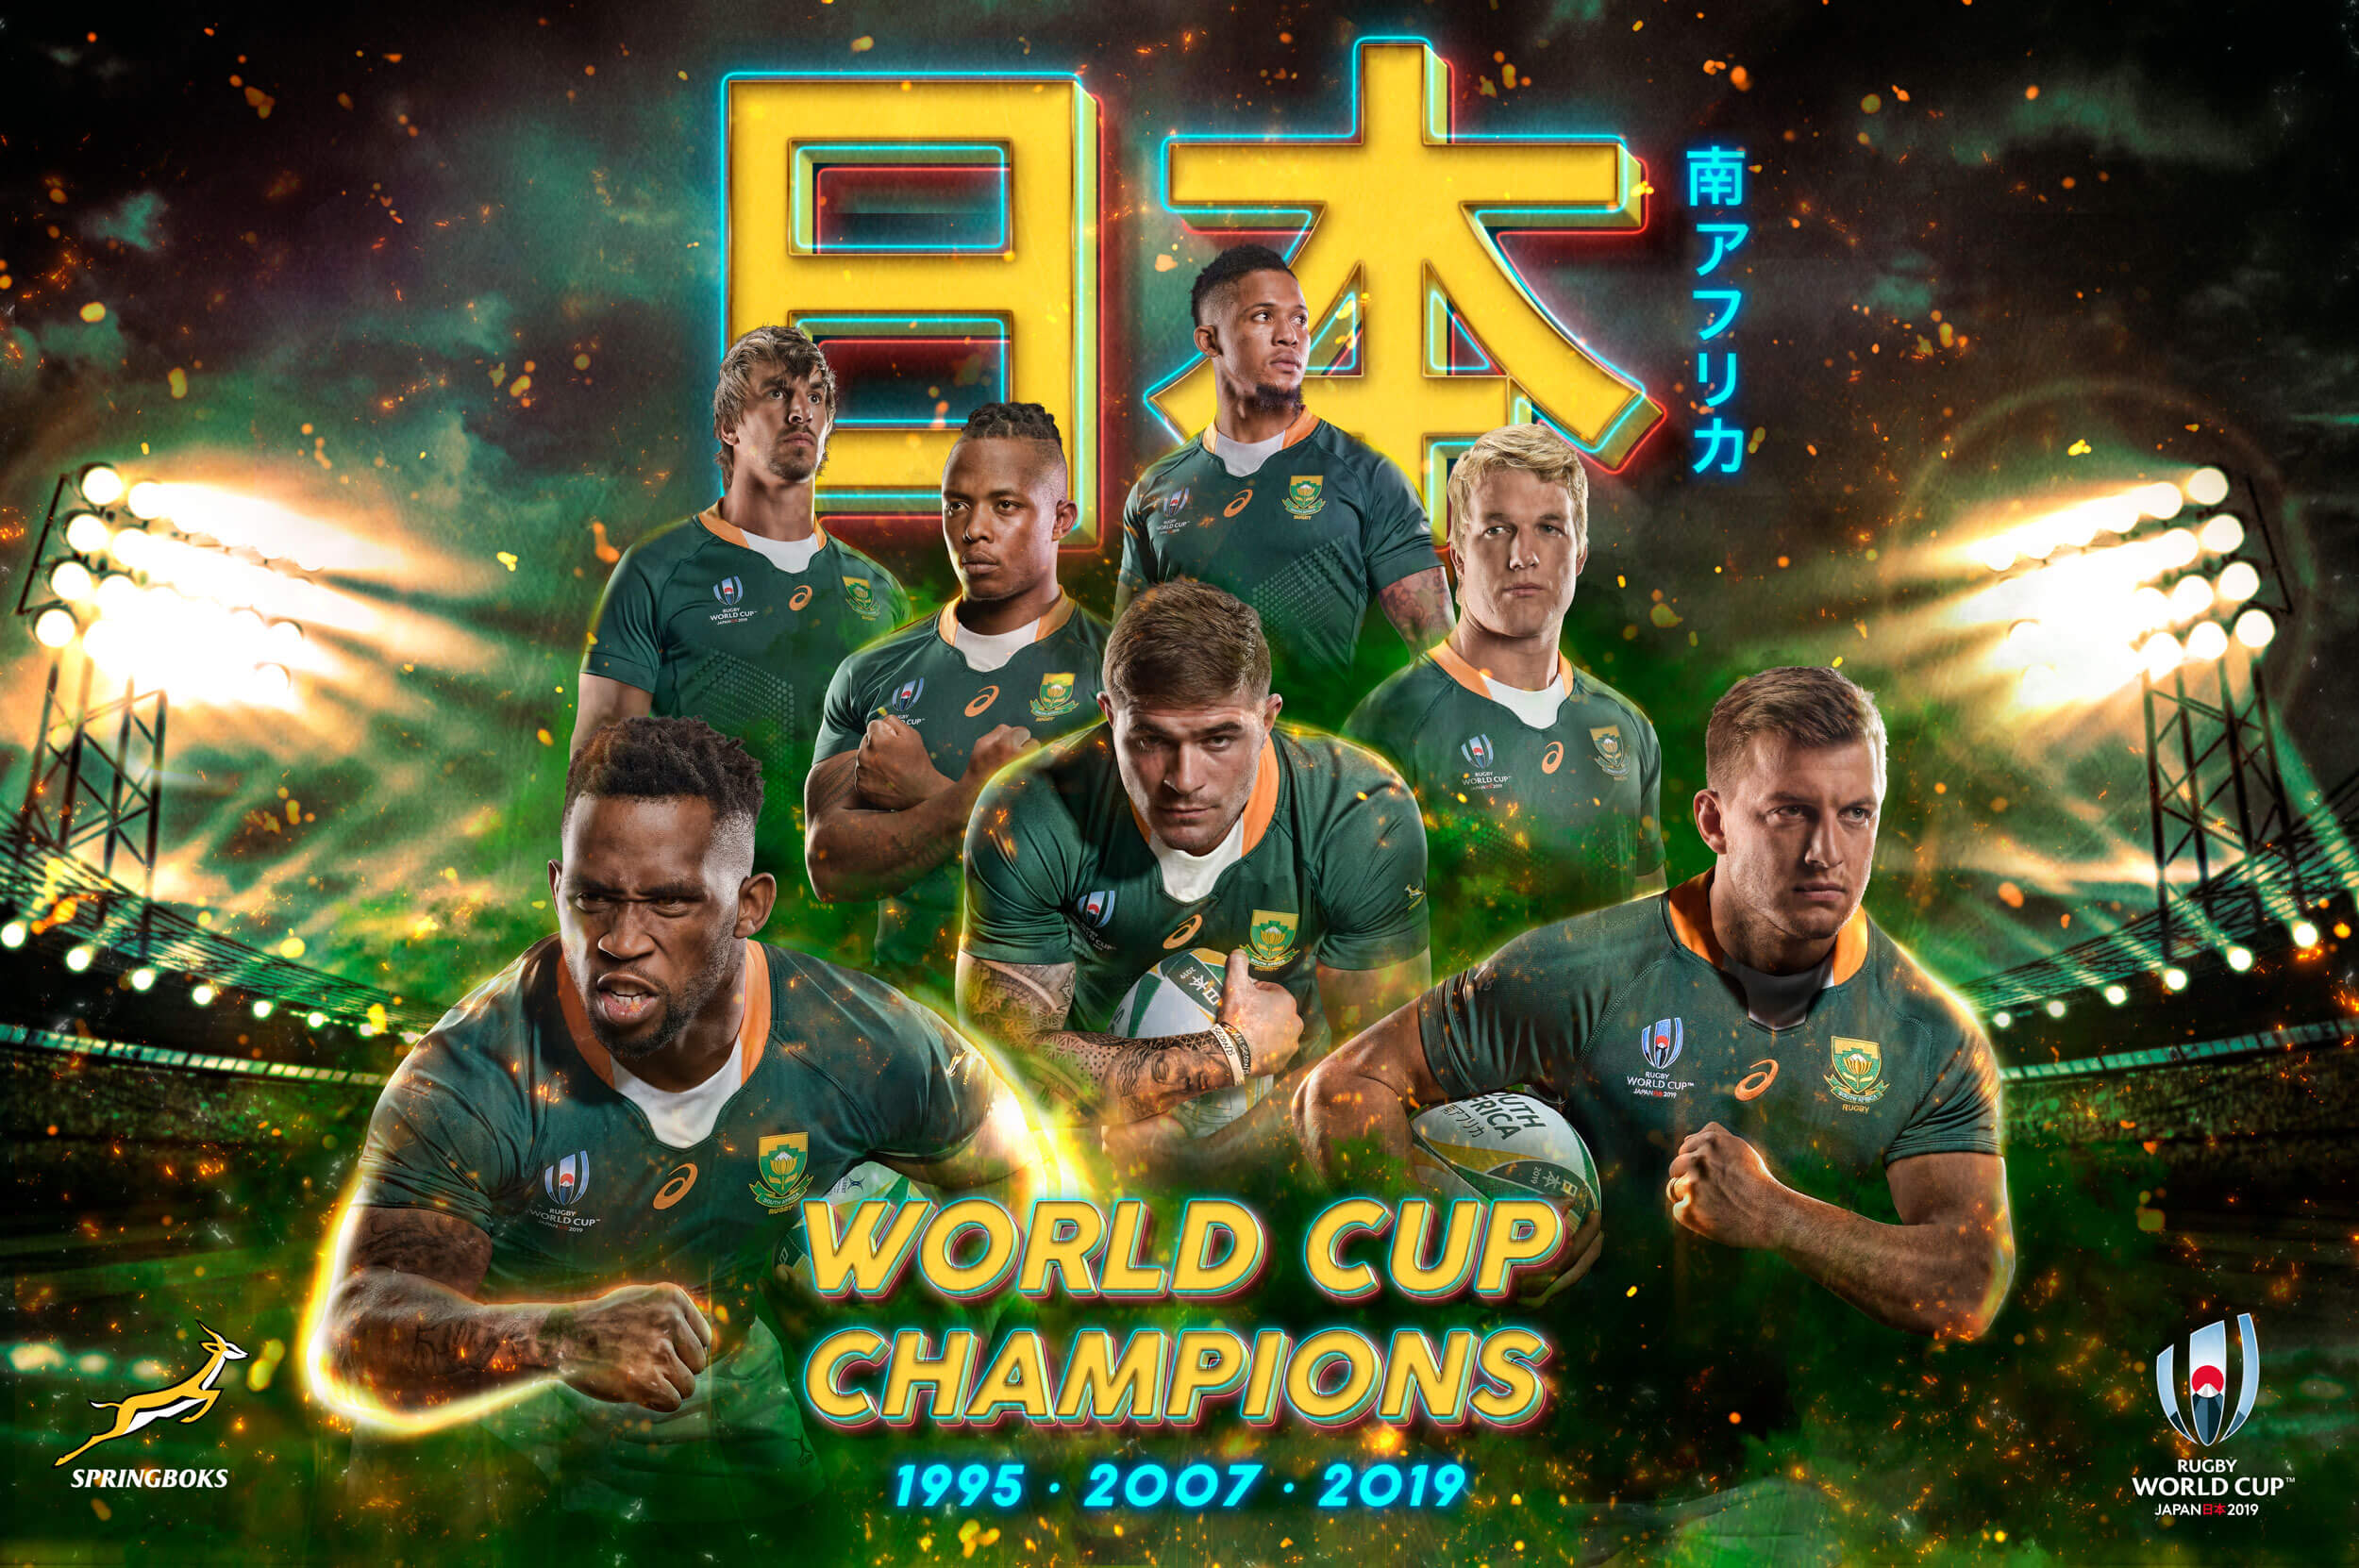 rugby-worldcup-2019-south-africa-champions-brandon-barnard-photography-group.jpg